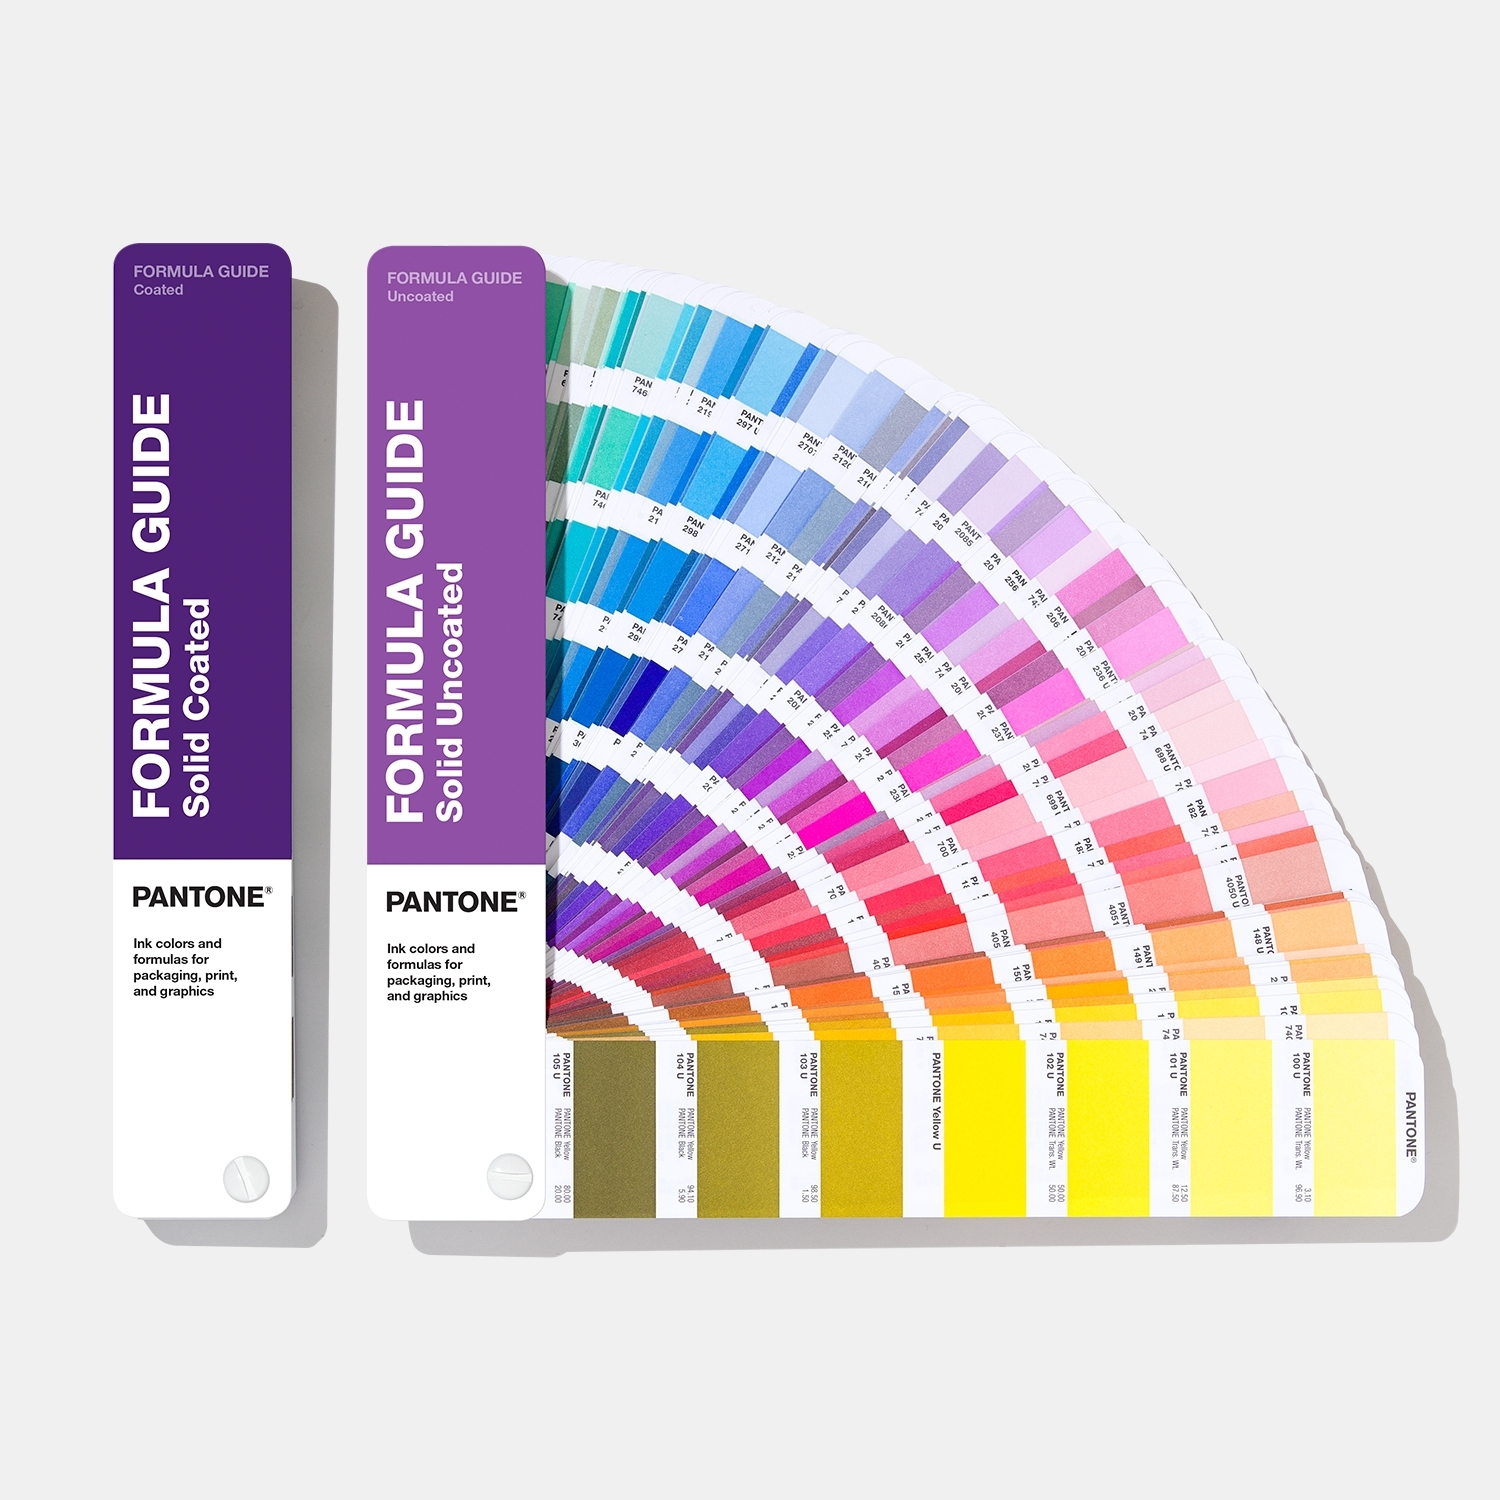 pantone formula guide solid coated uncoated color guide